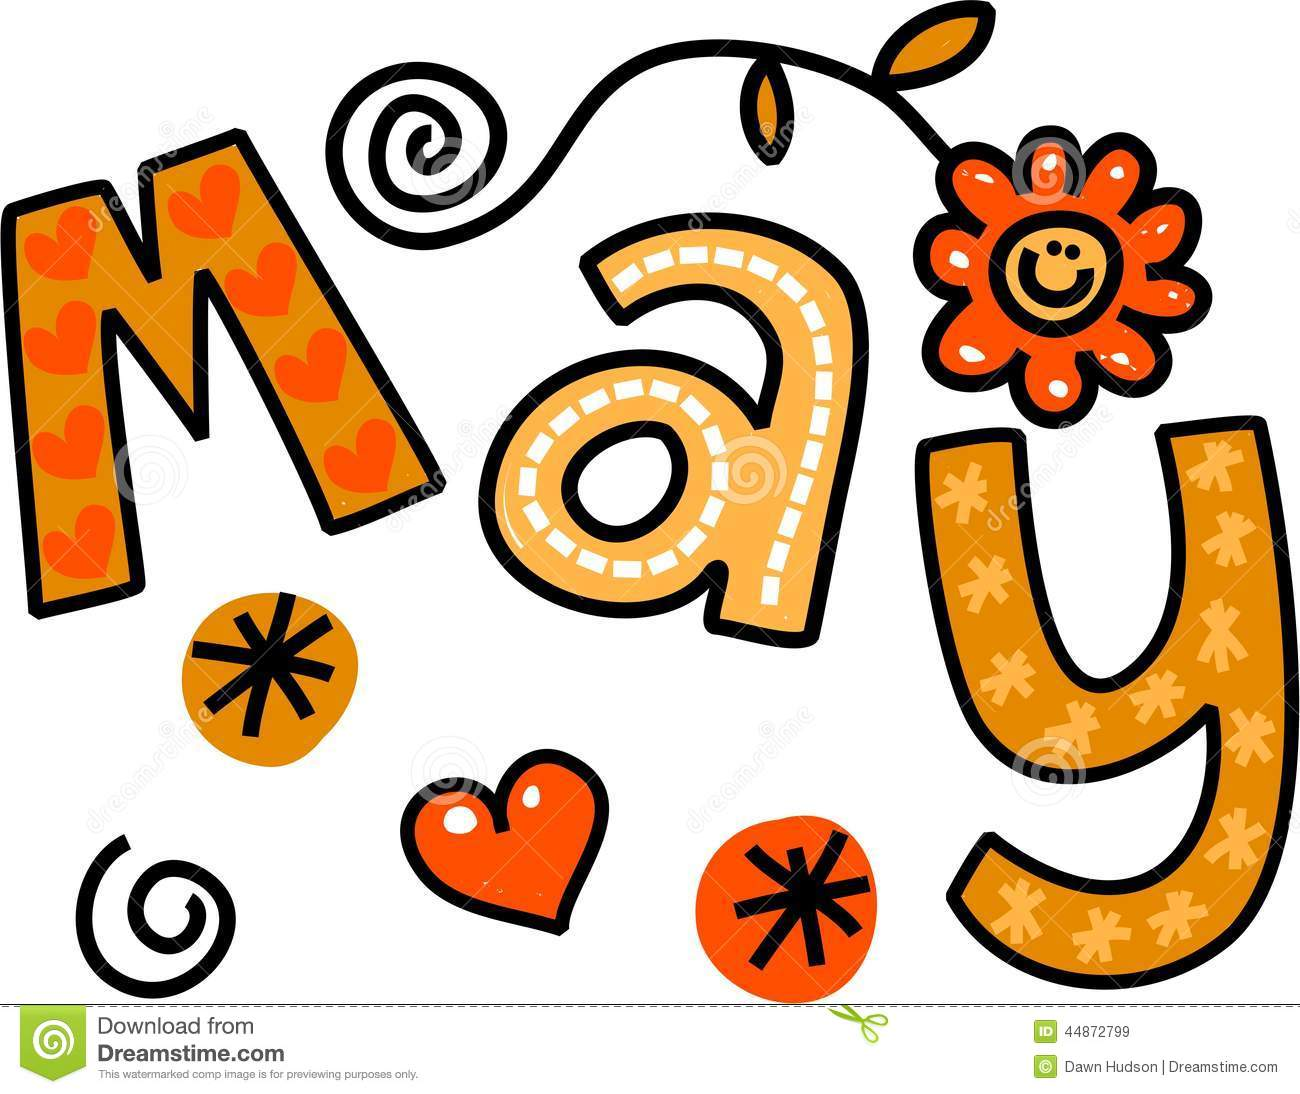 Whimsical cartoon text doodle for the month of May.